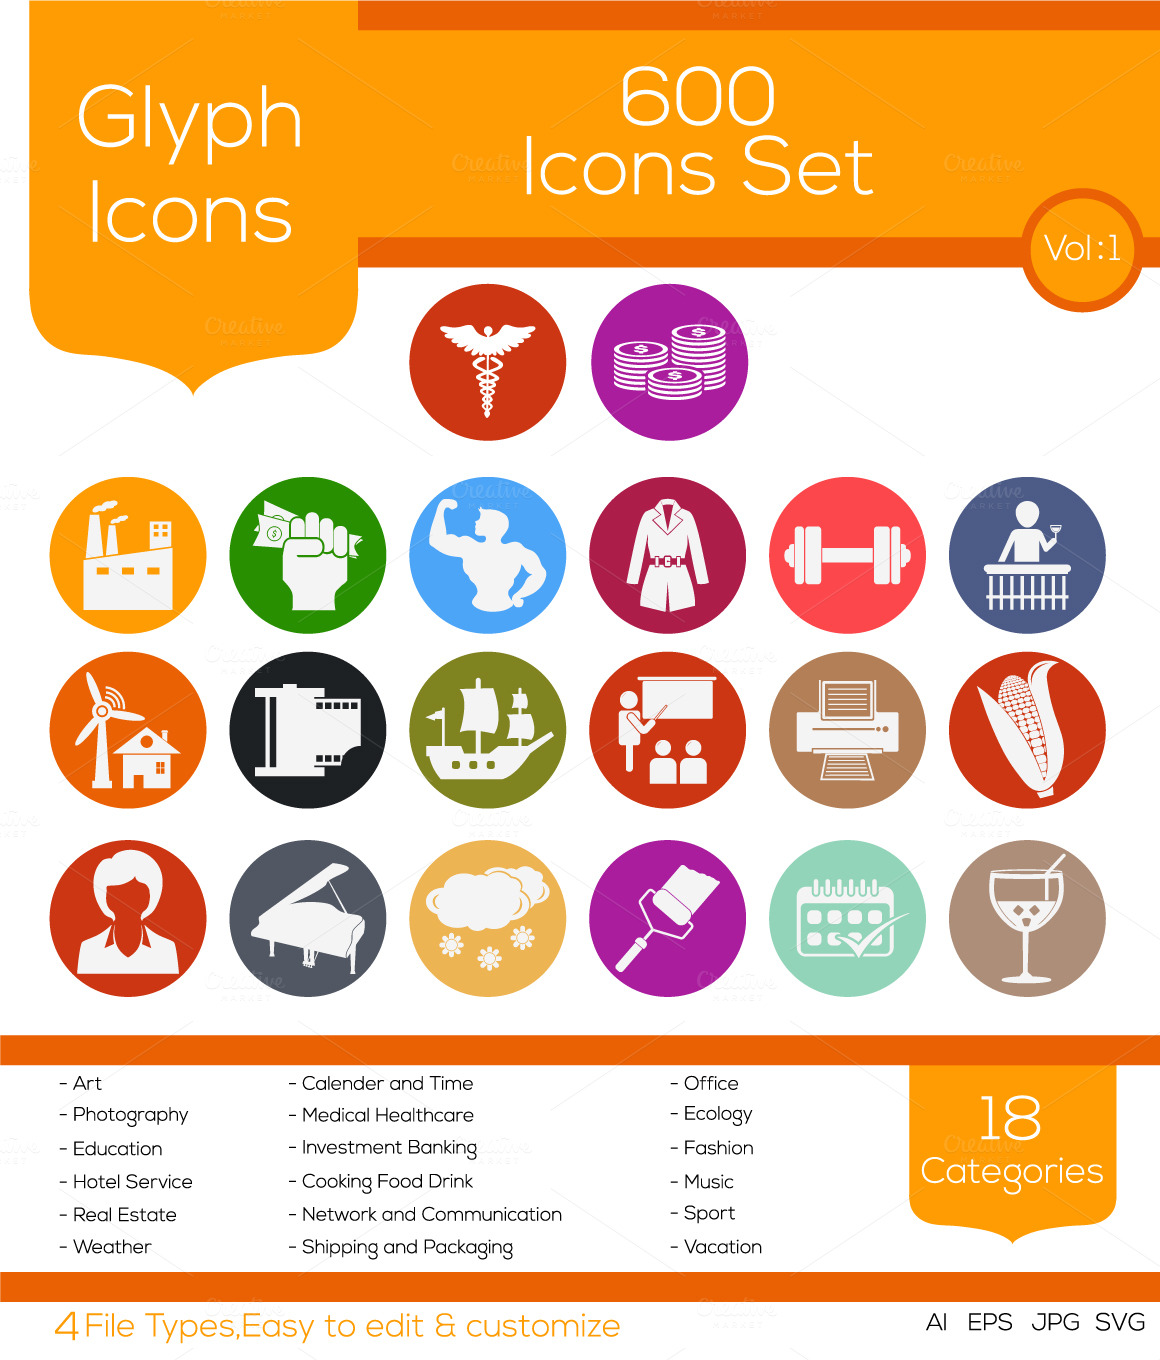 600-Glyph-Icons-Sets-Vol-1